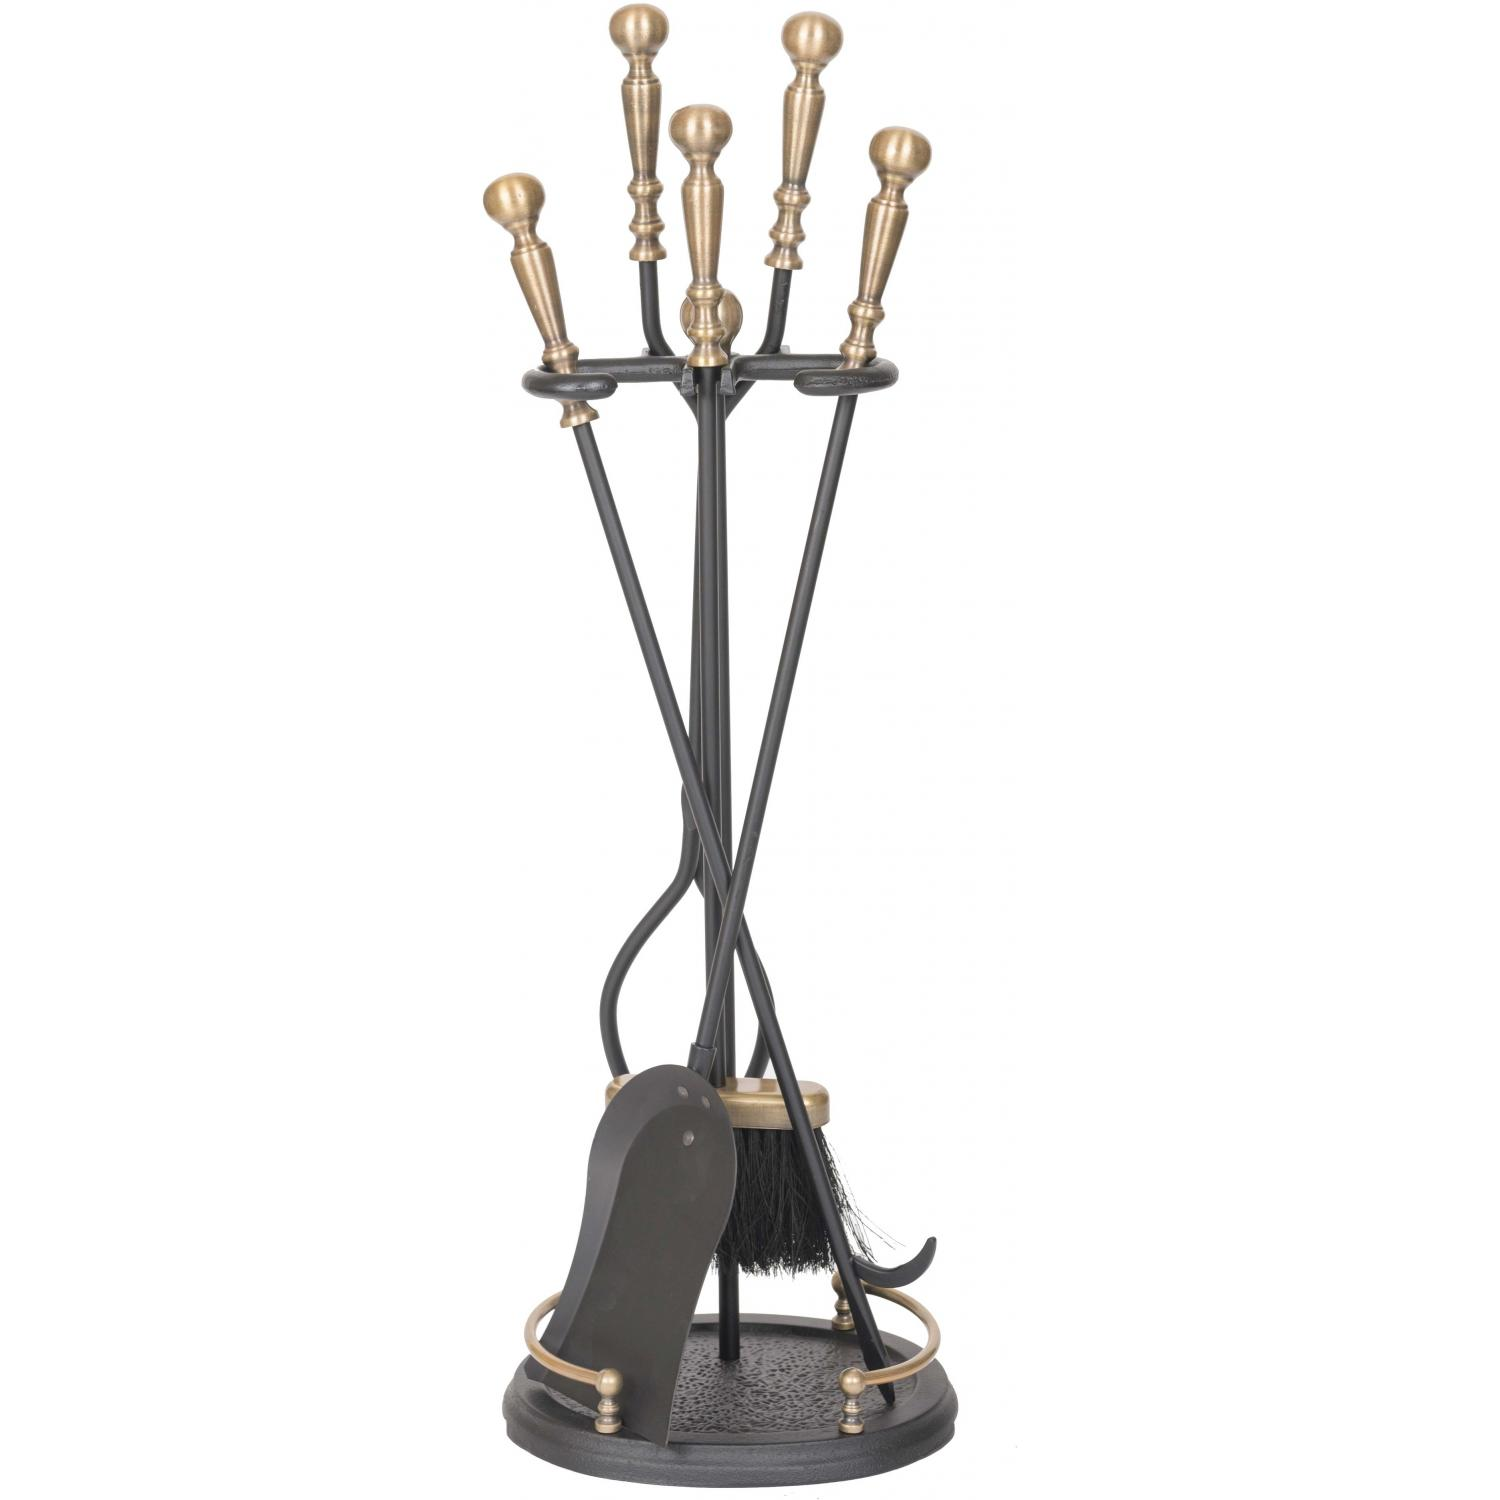 Picture of Alpine Flame 5-Piece Antique Brass/Black Fireplace Tool Set